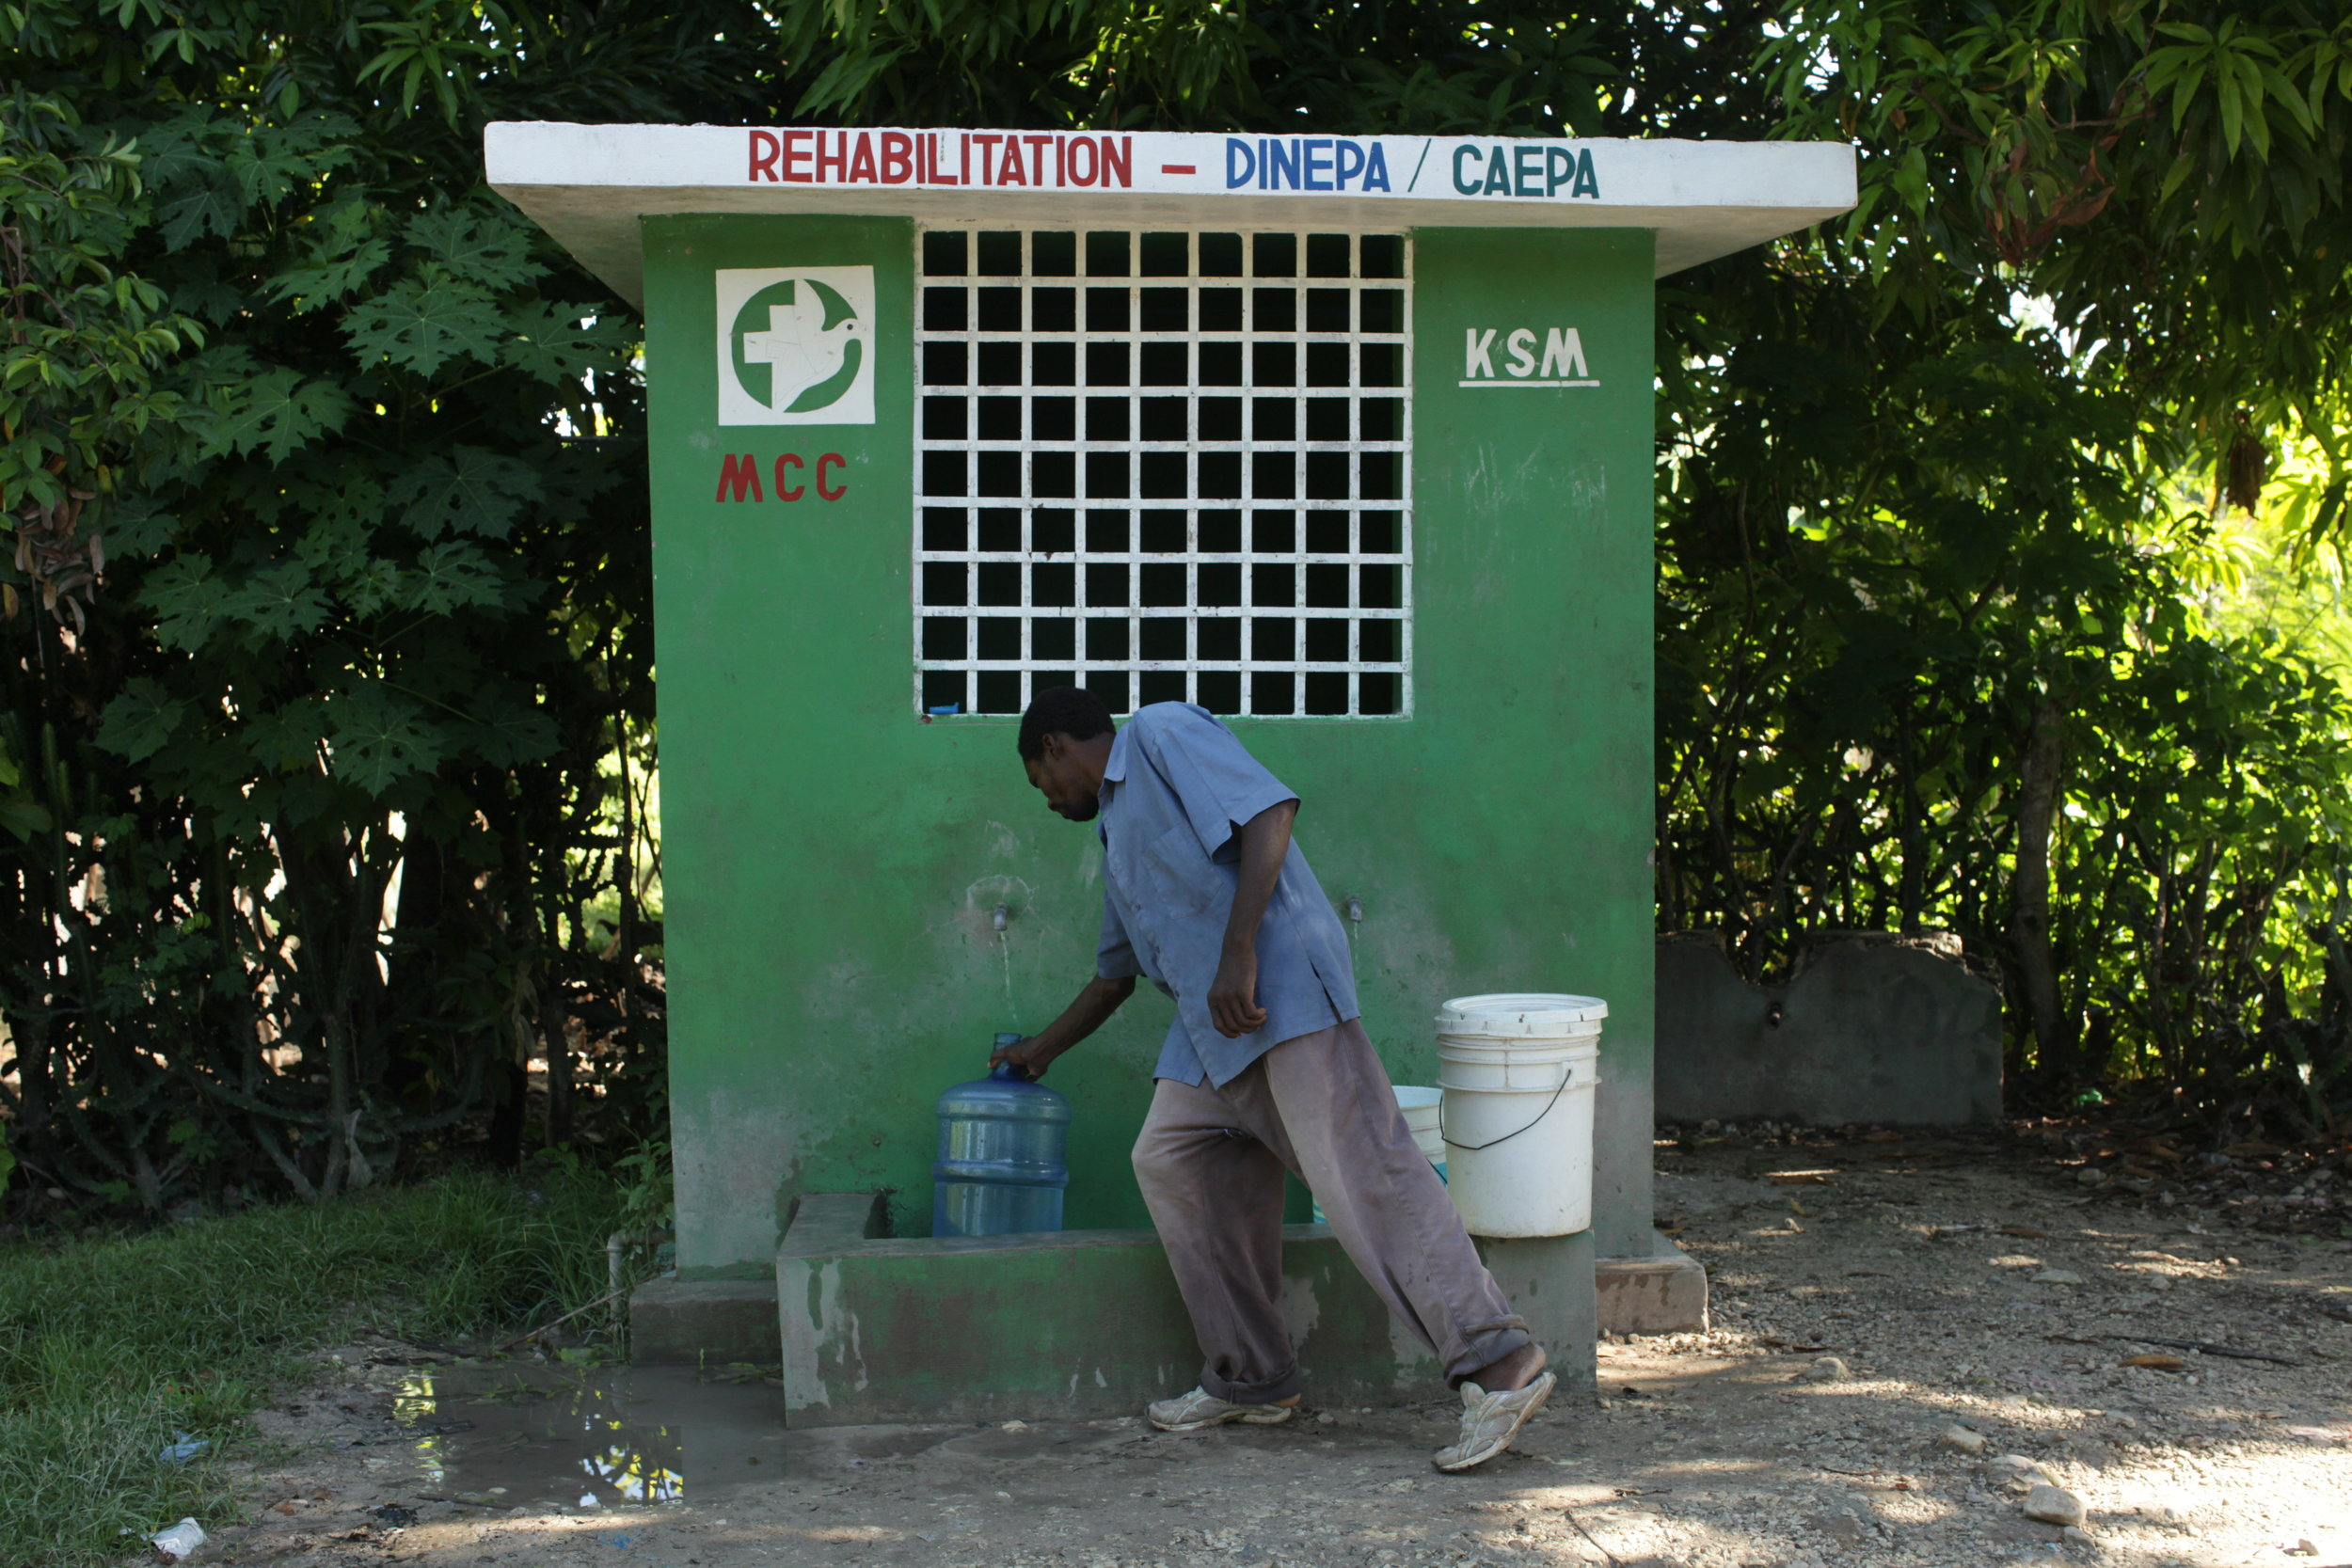 In response to the cholera outbreak and lack of potable water following the earthquake, MCC built 32 kiosks and 11 fountains to provide clean water for residents in and around Desarmes. Pictured above, Germain Isaac waits for his water jug to fill.